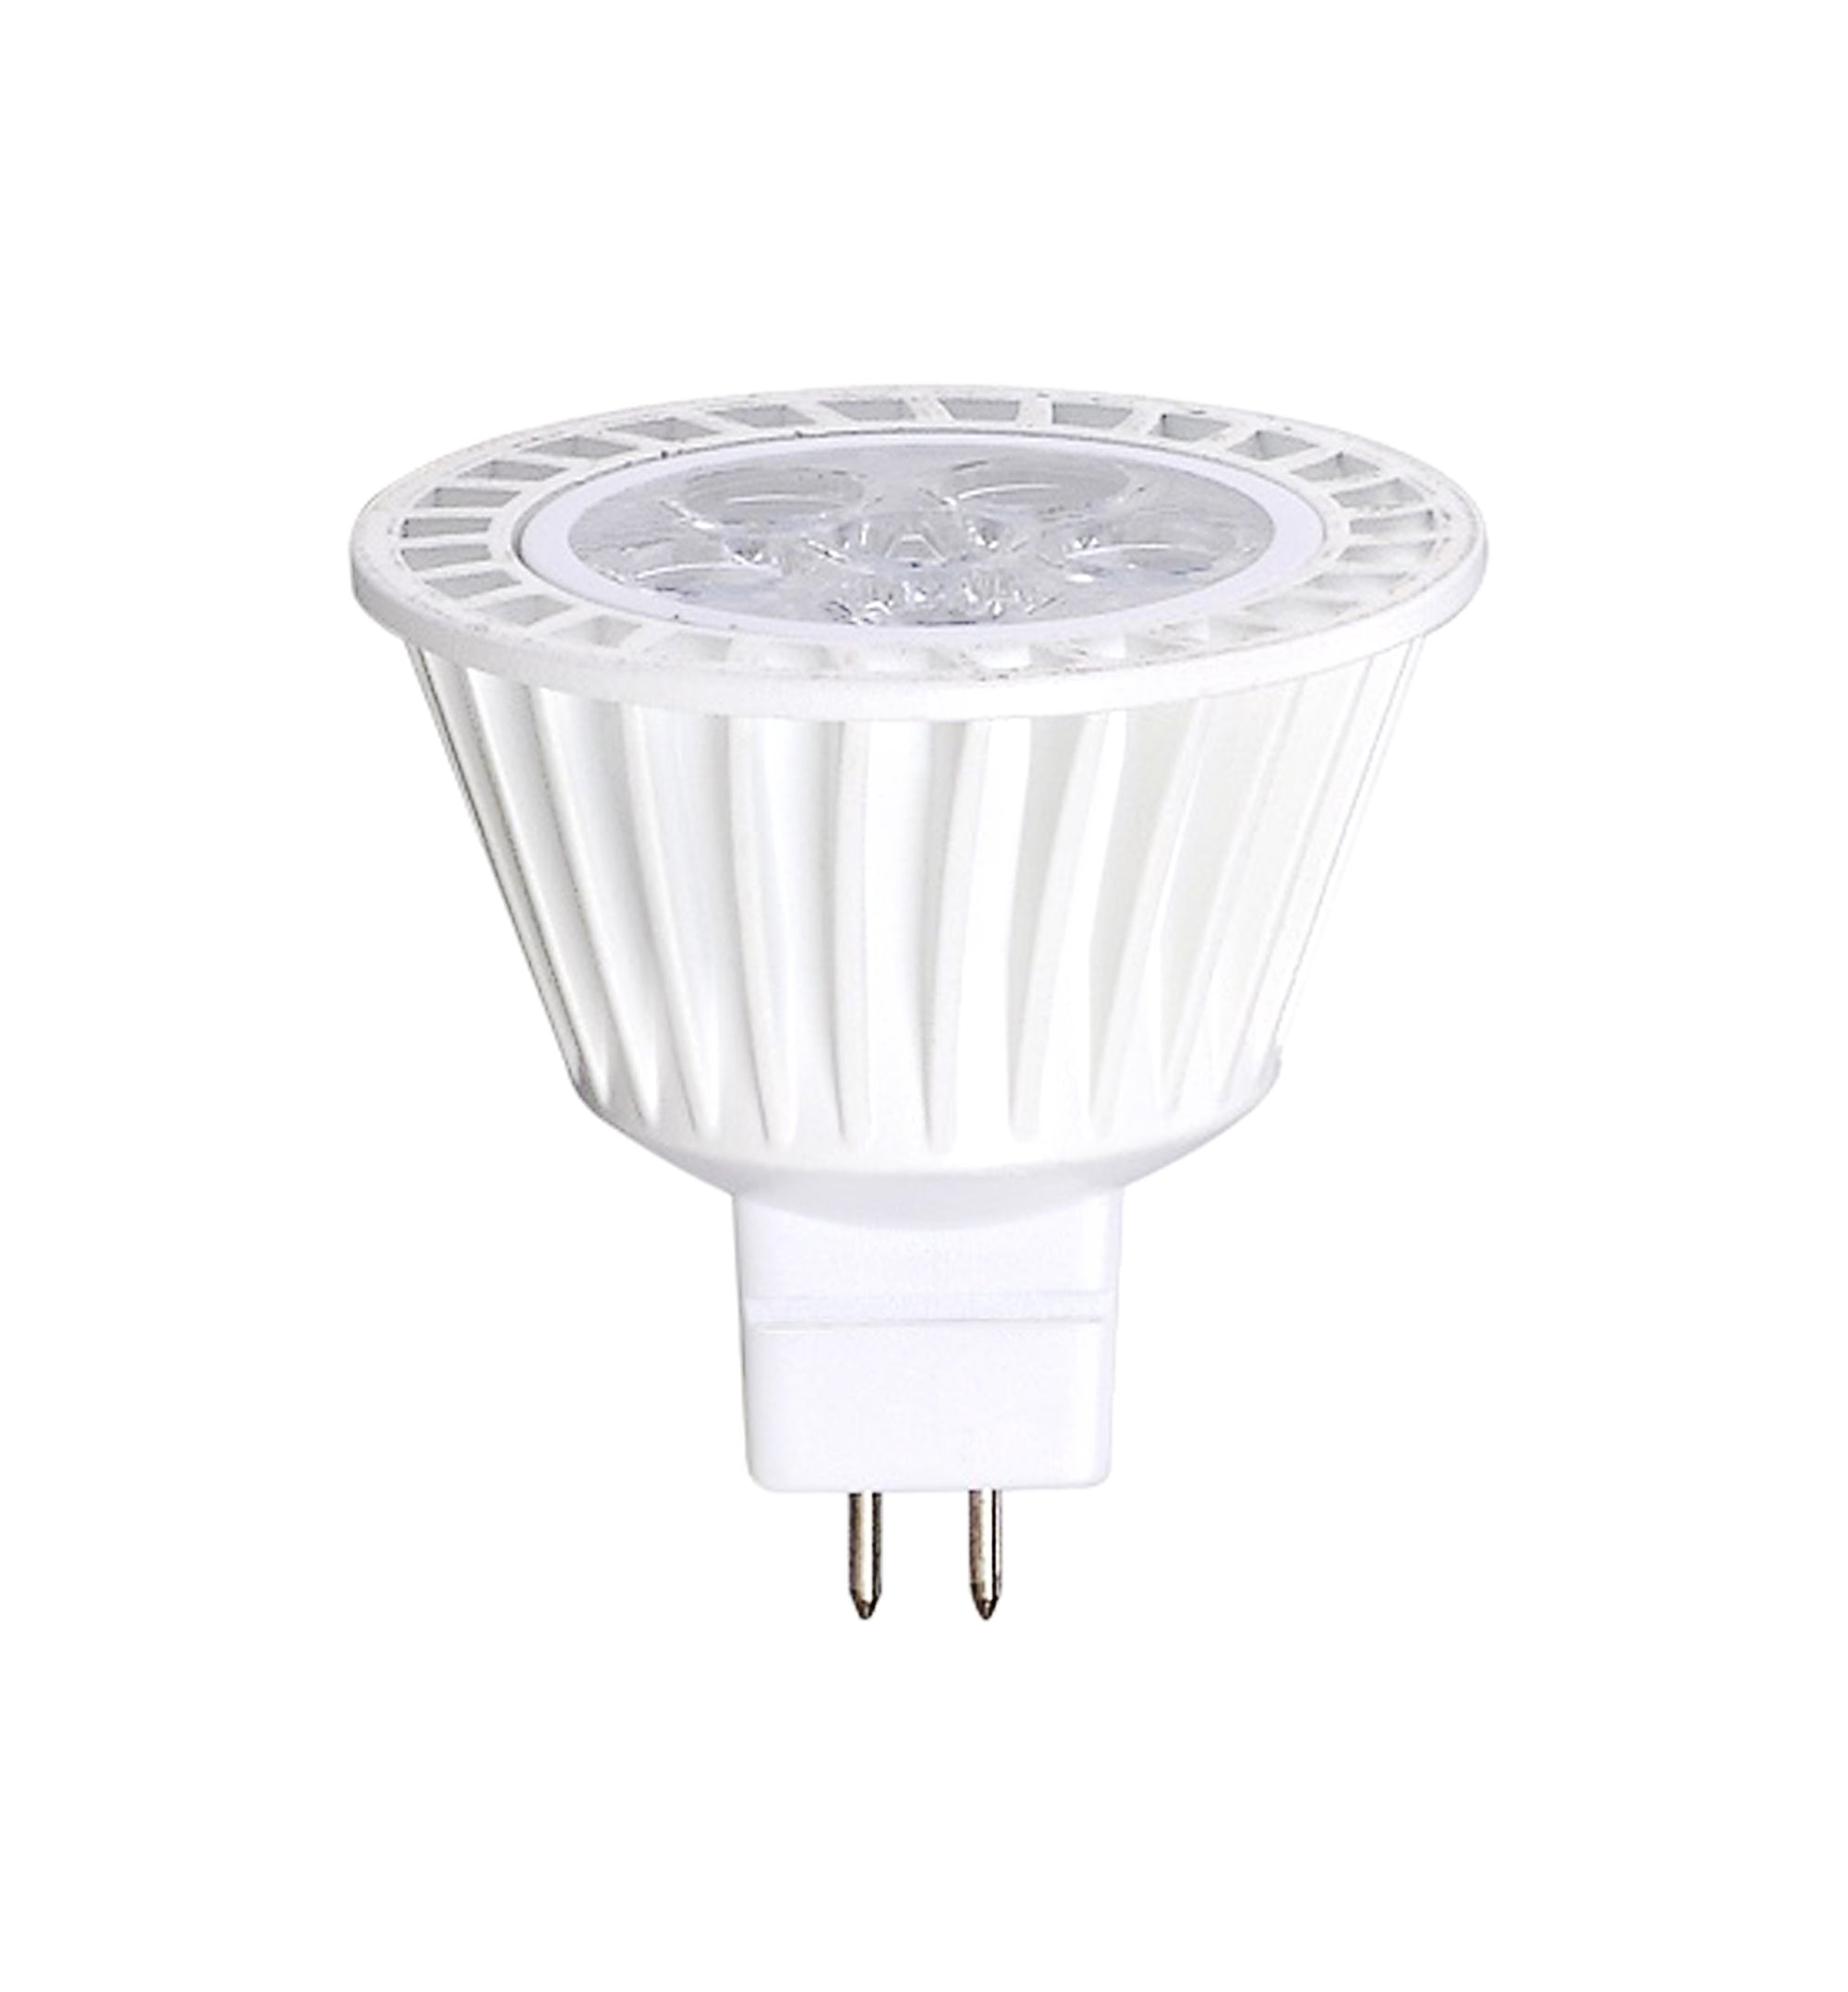 Mr16 Led Bulbs: MR16 LED Bulbs